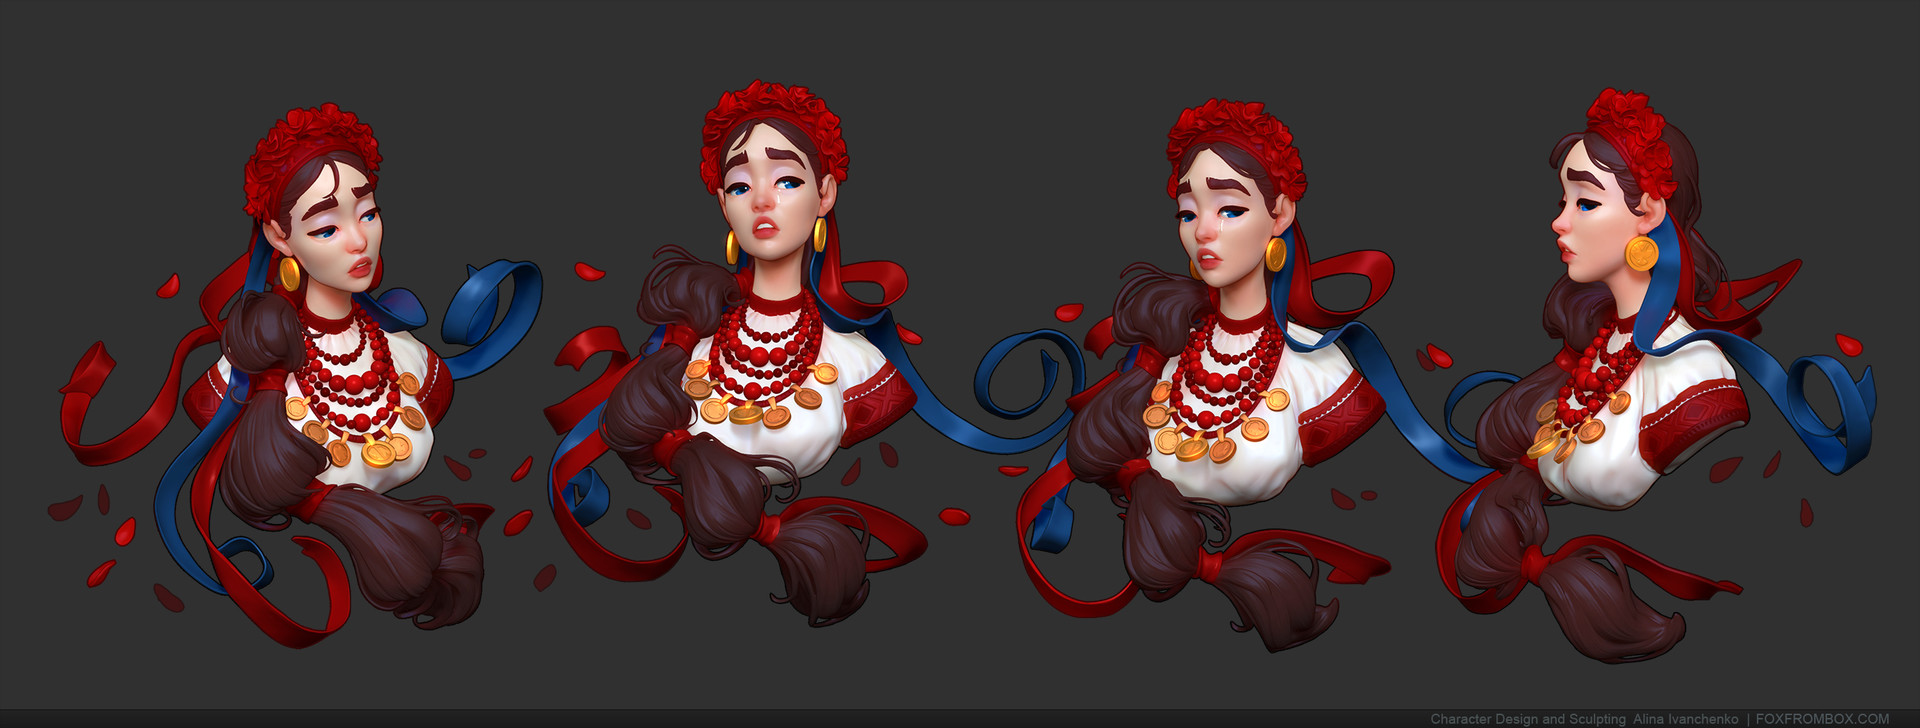 Zbrush BPR render + Post production in Photoshop